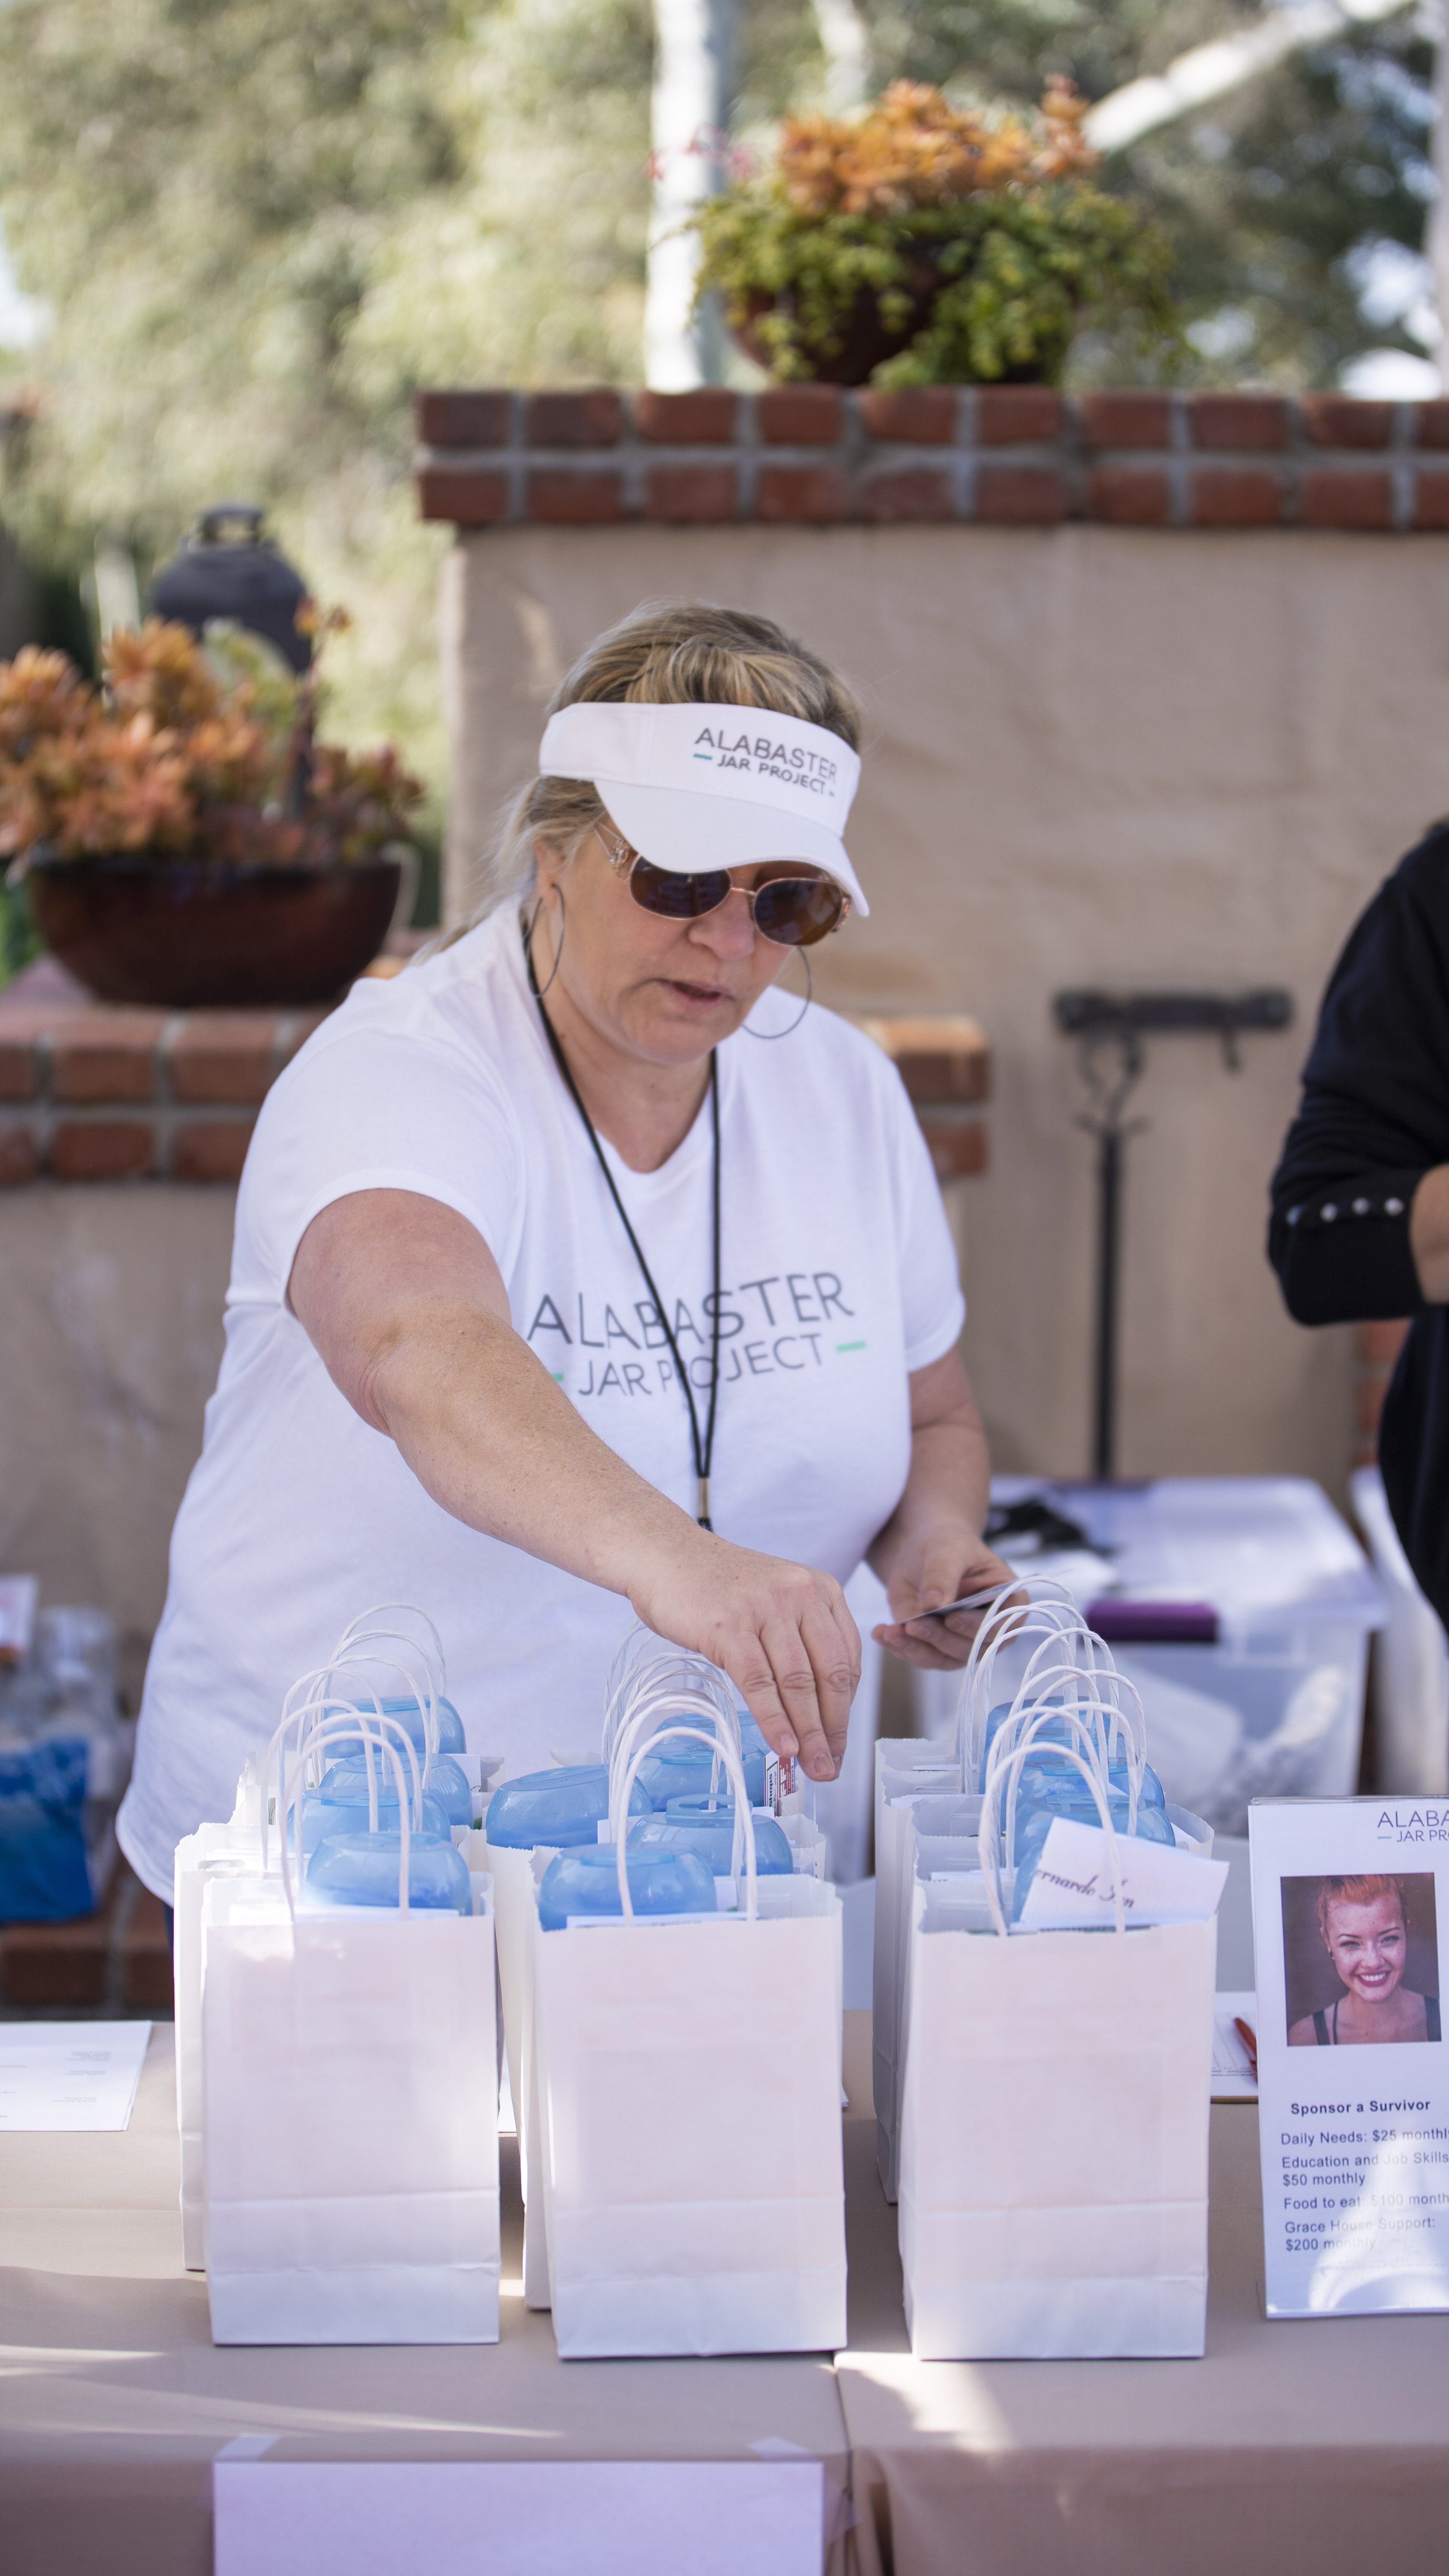 Alabaster Jar Project 501(c)(3) 3rd Annual Golf Tournament Fundraiser gallery image #26